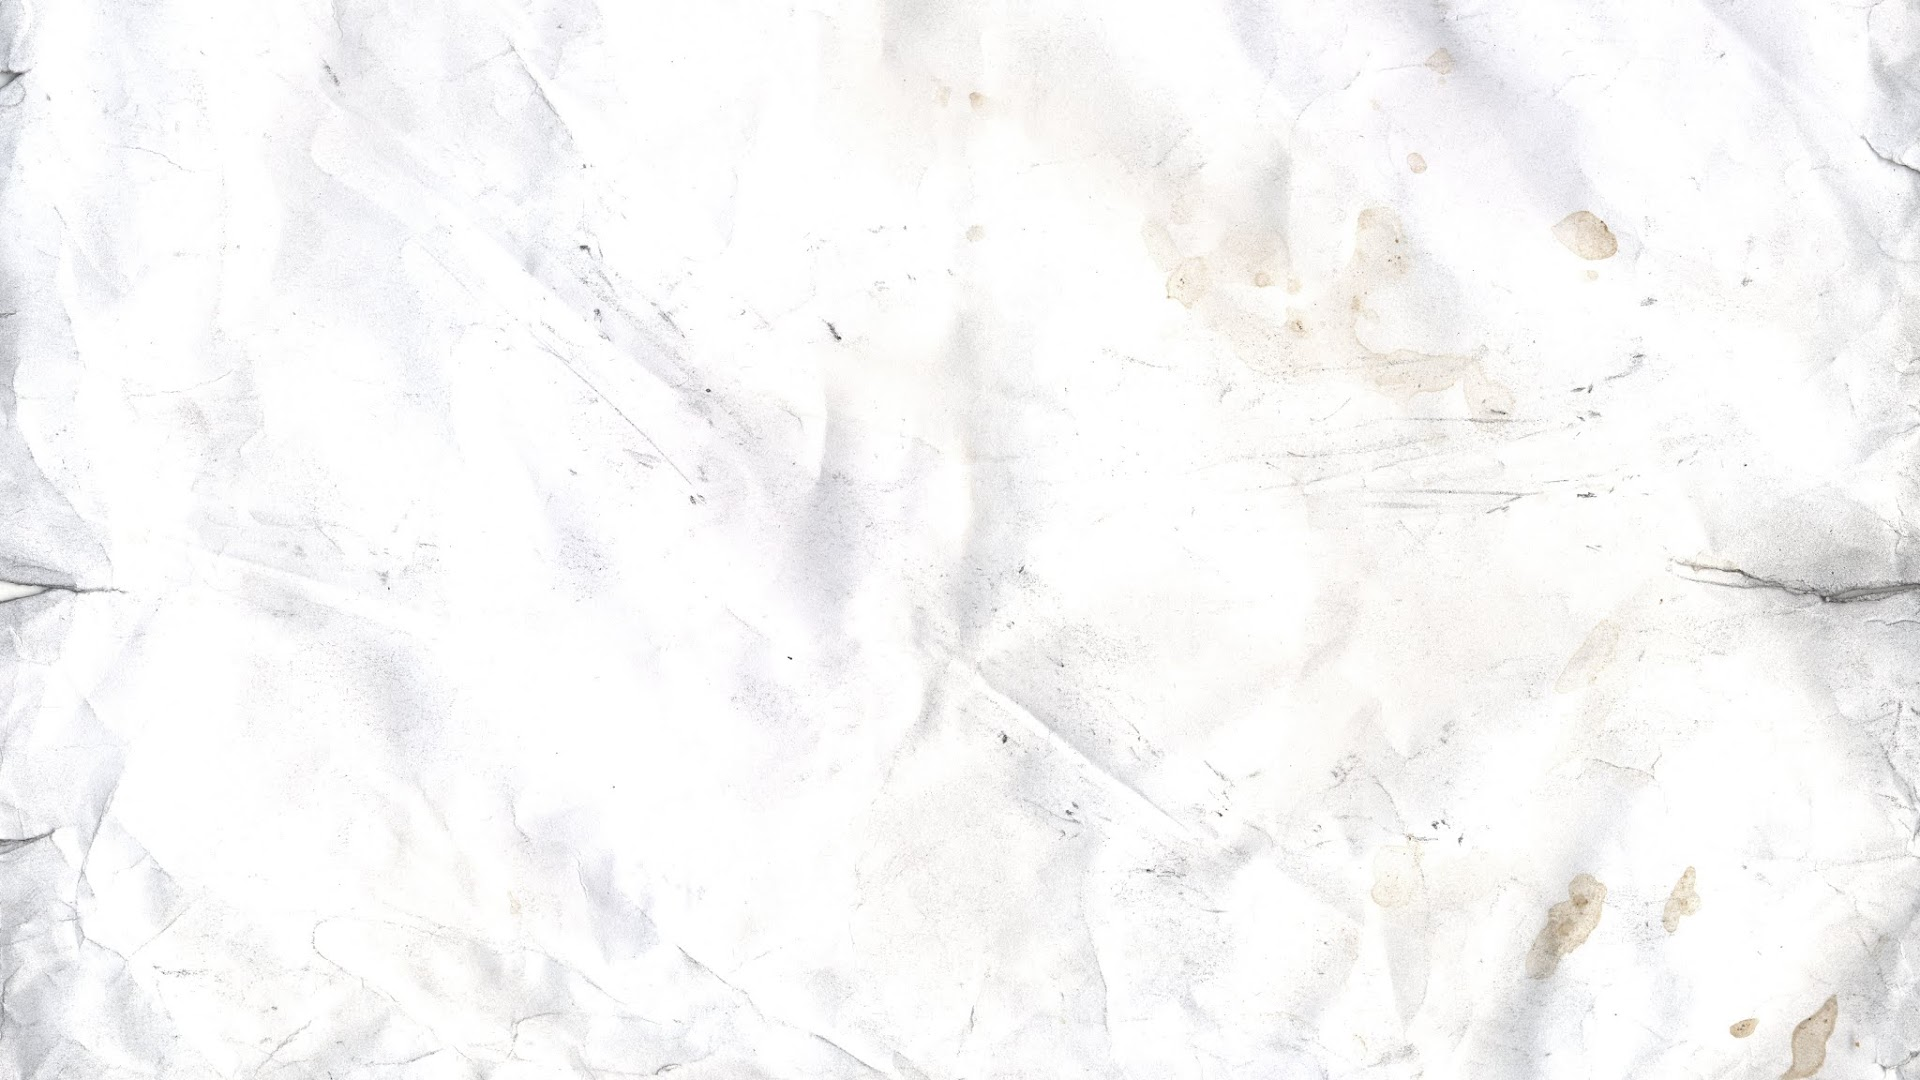 Free Subtle Grunge Paper Background